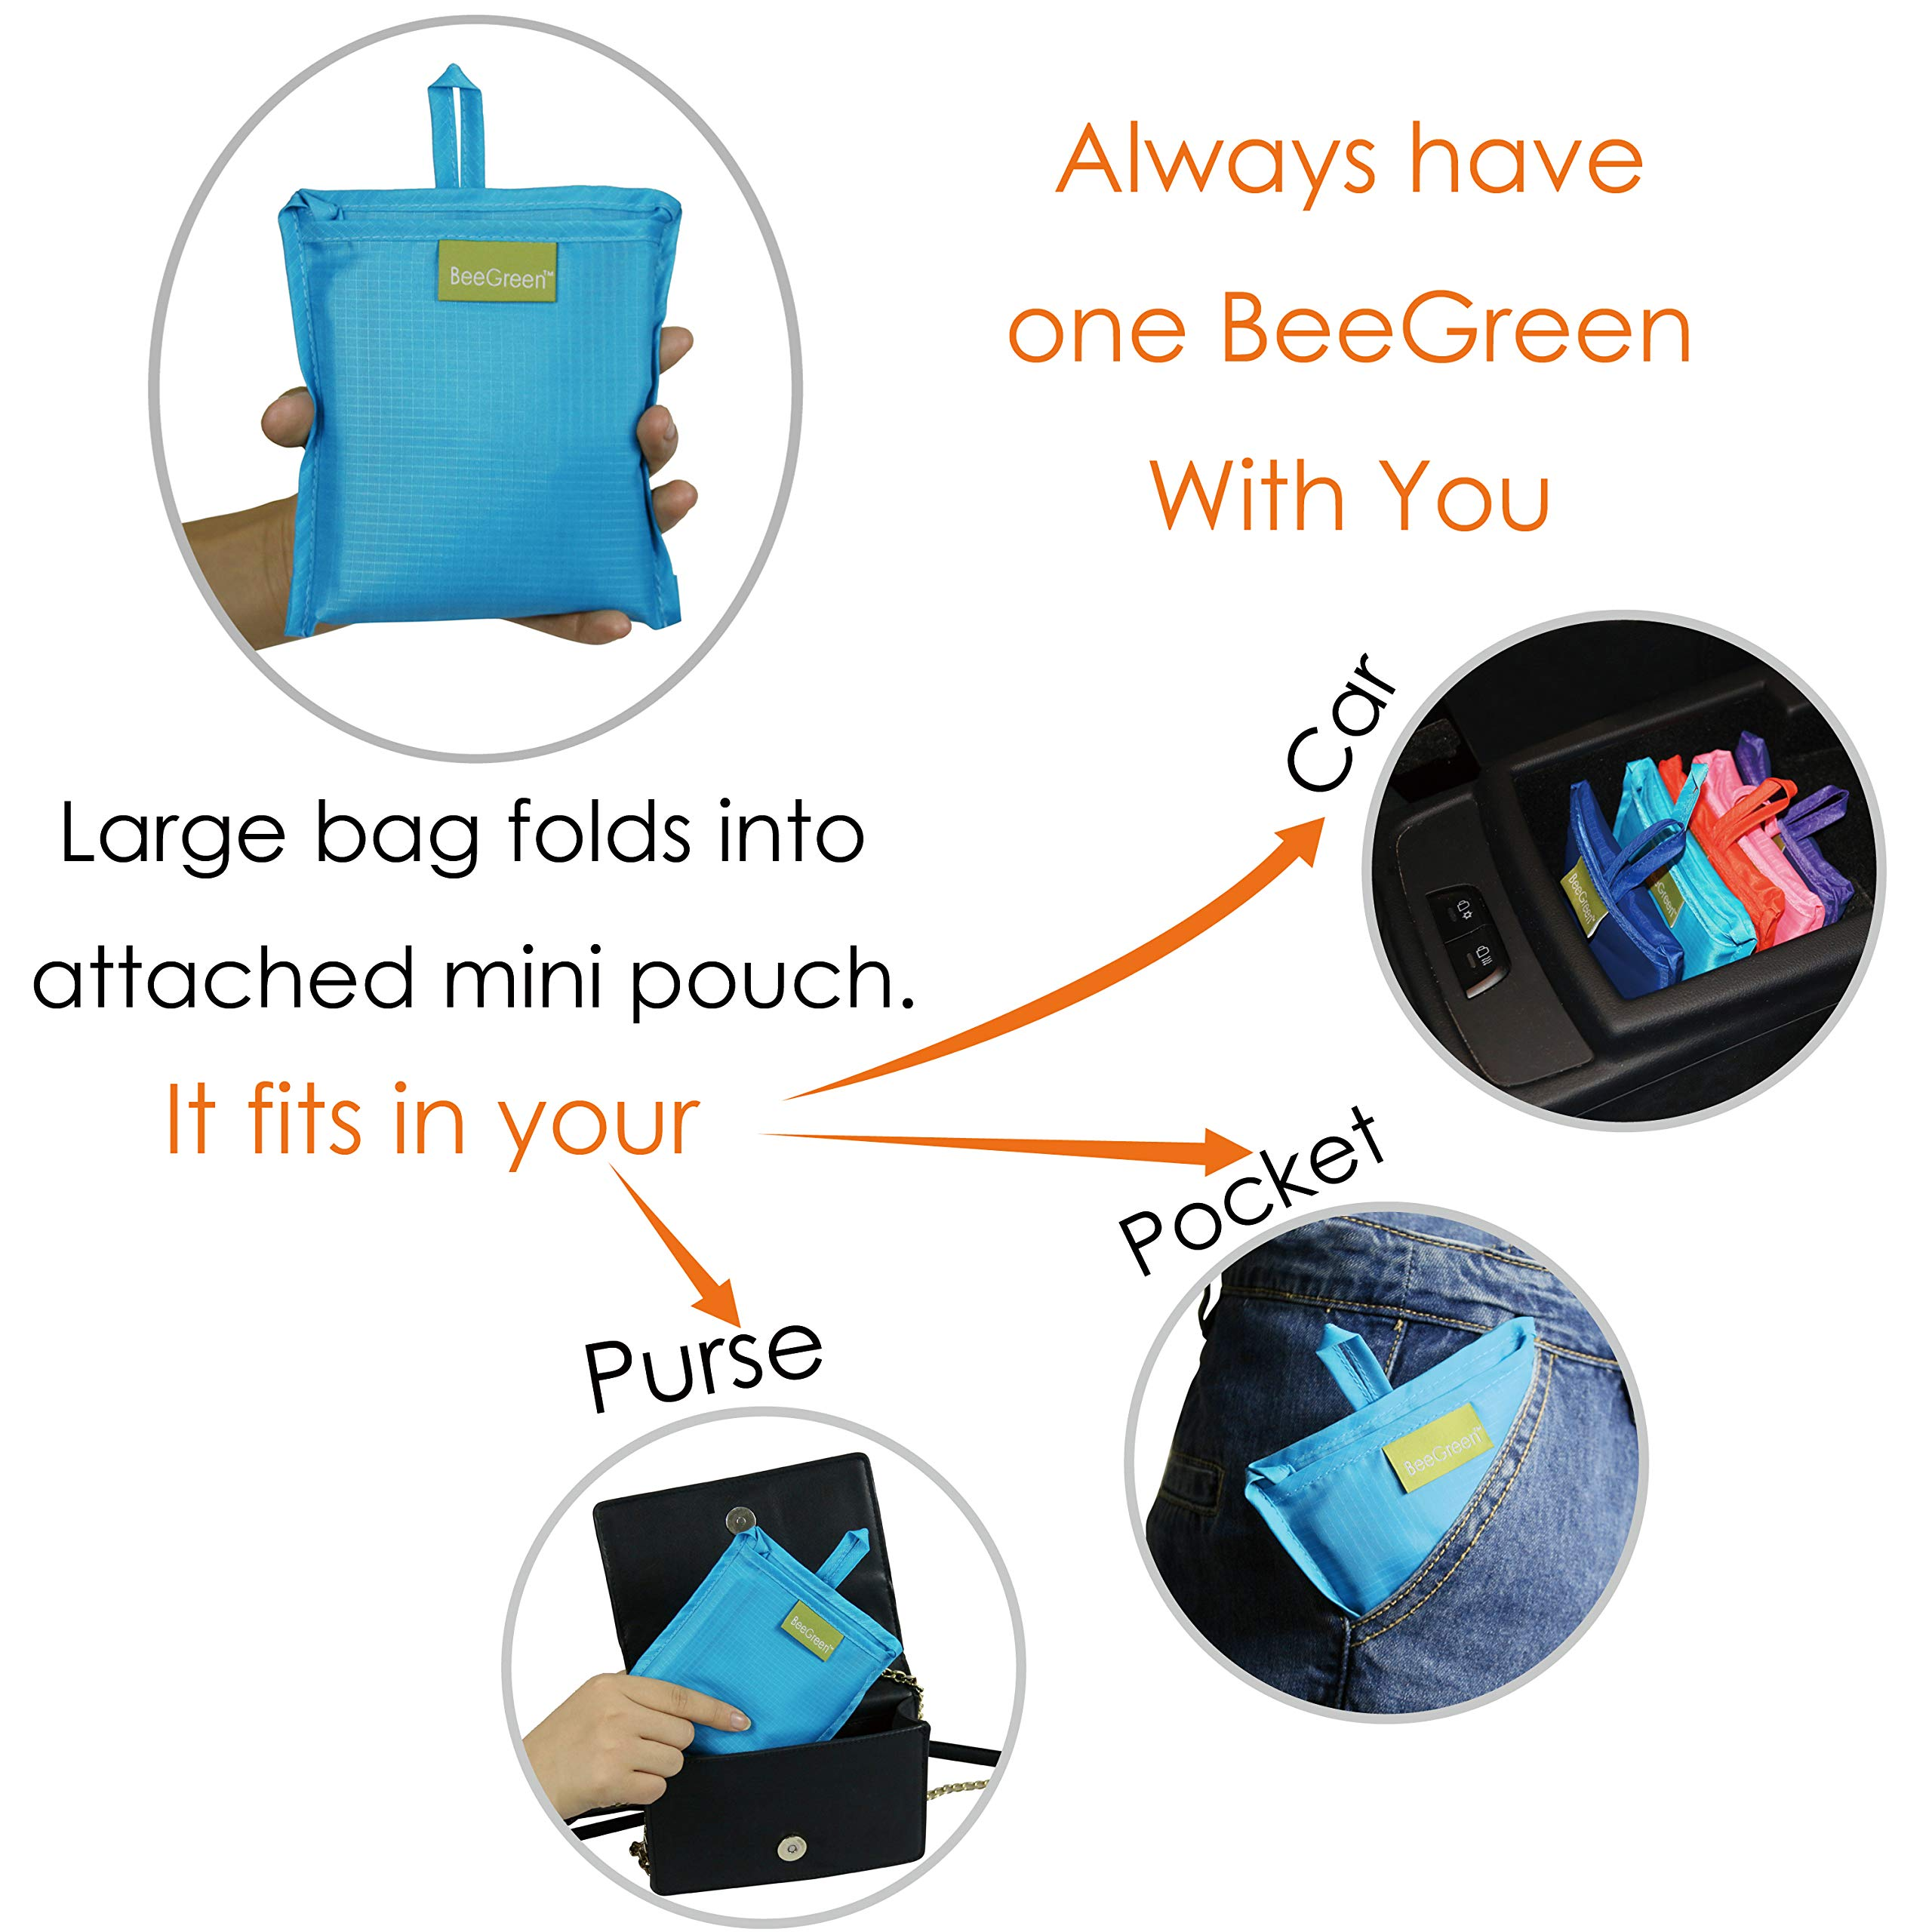 Reusable Grocery Bags Set of 5, Grocery Tote Foldable into Attached Pouch, Ripstop Polyester Reusable Shopping Bags, Washable, Durable and Lightweight (Royal,Purple,Pink,Orange,Teal) by BeeGreen (Image #4)